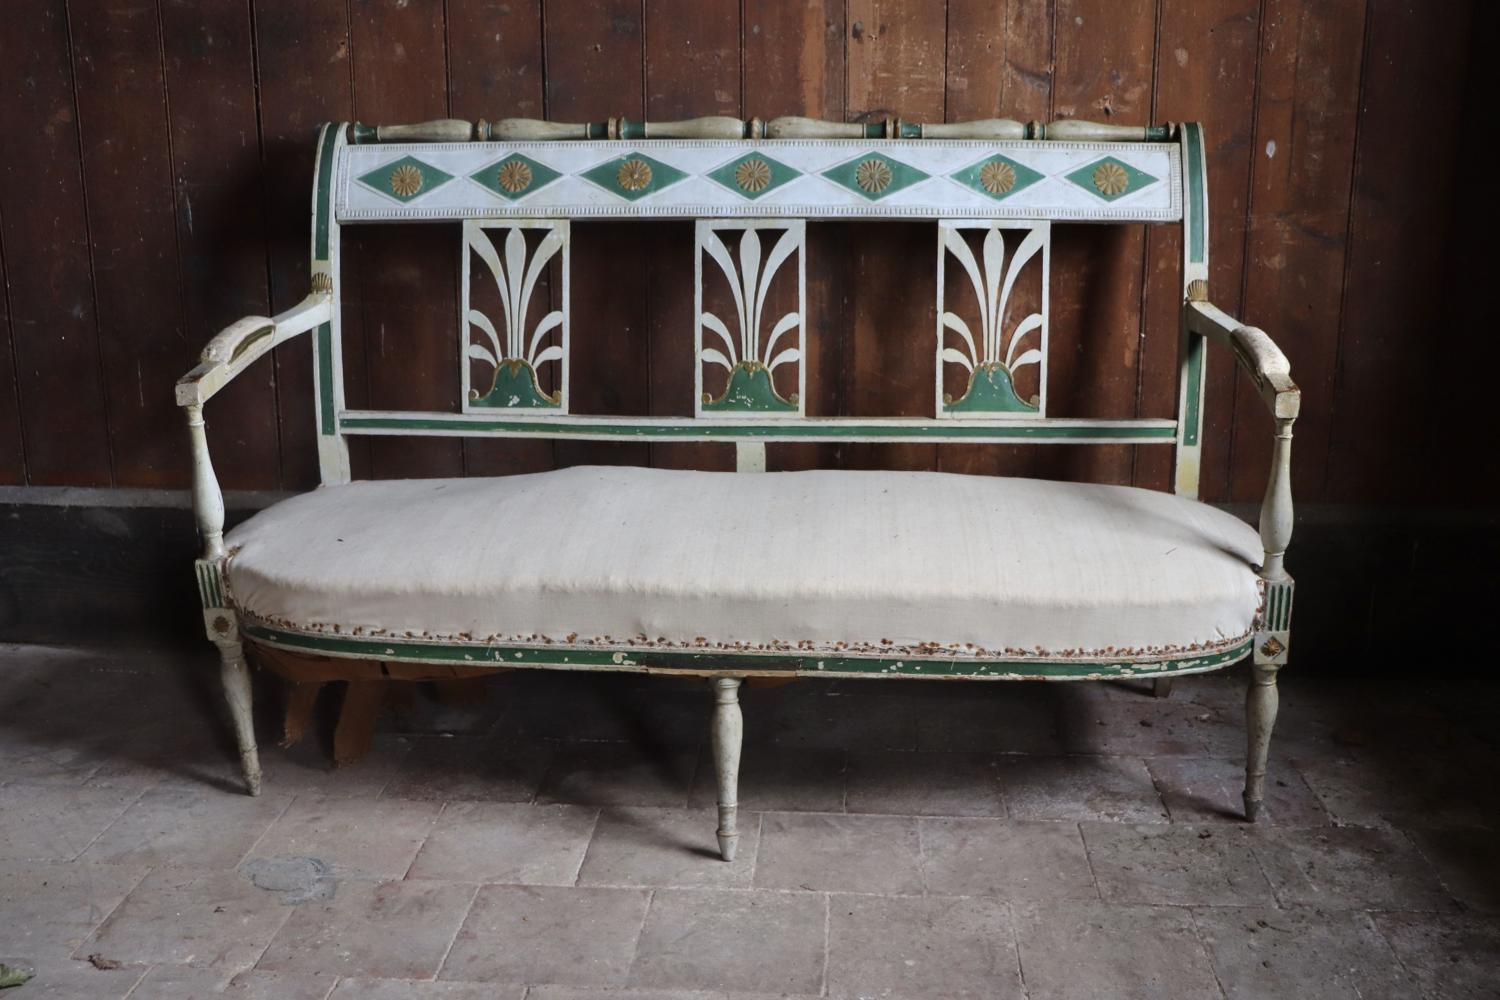 19th century French banquette